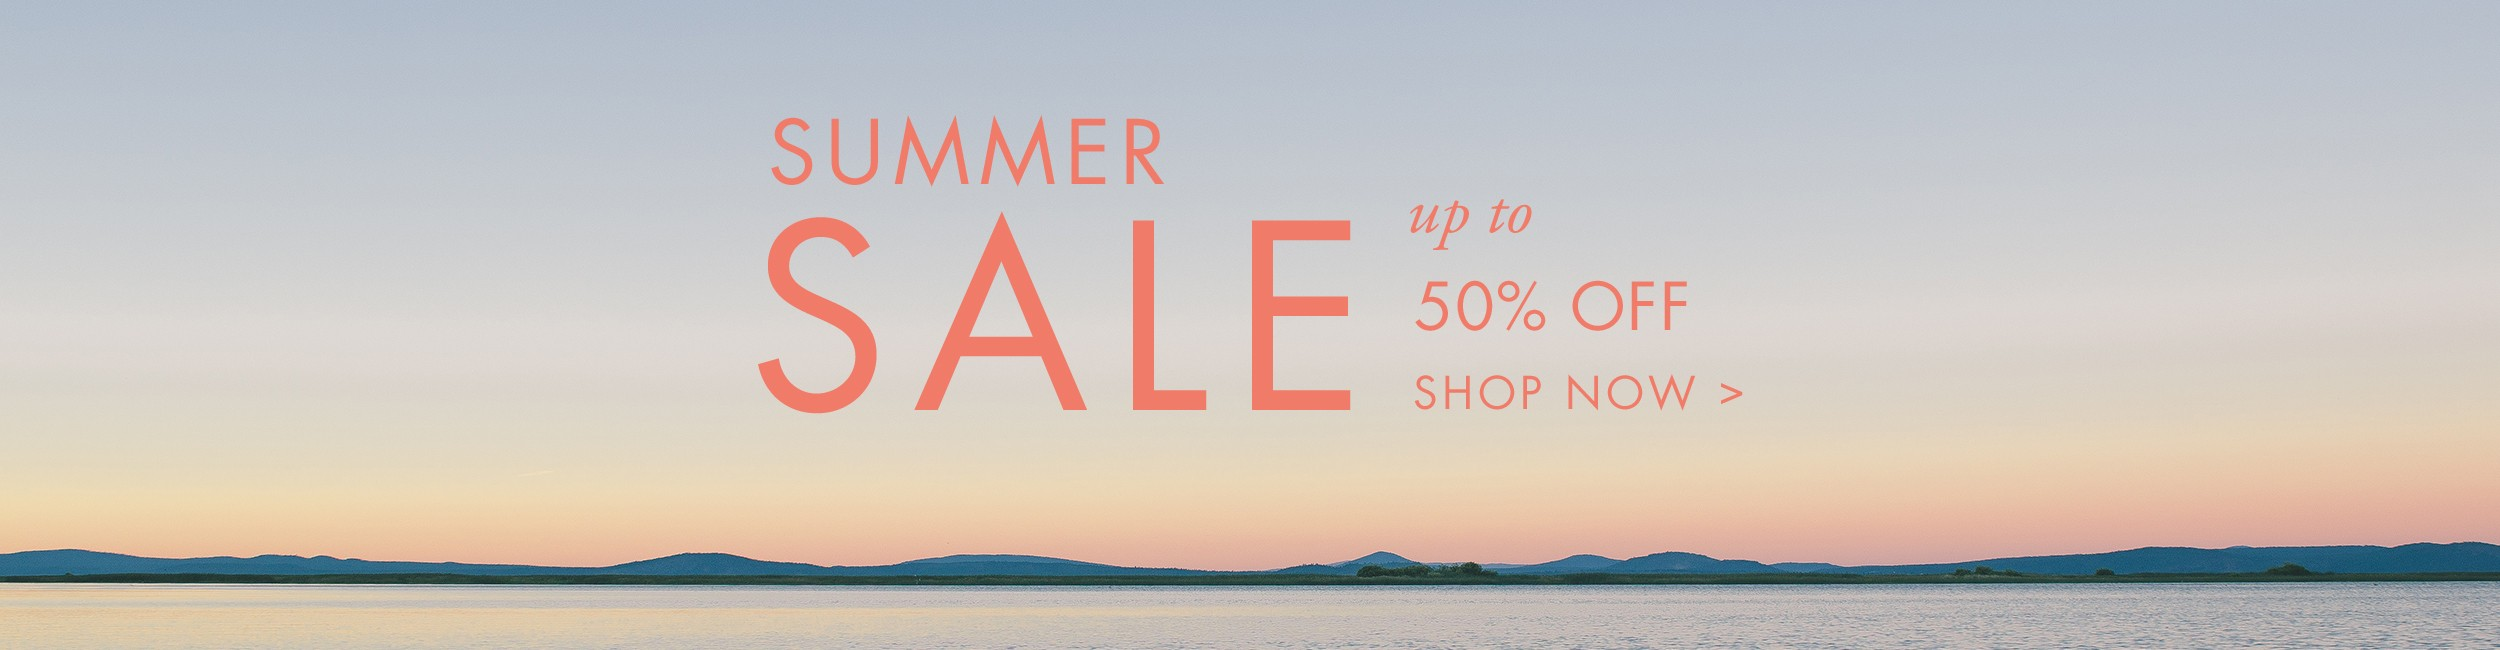 Celtic & Co: Sale up to 50% off women's and men's fashion